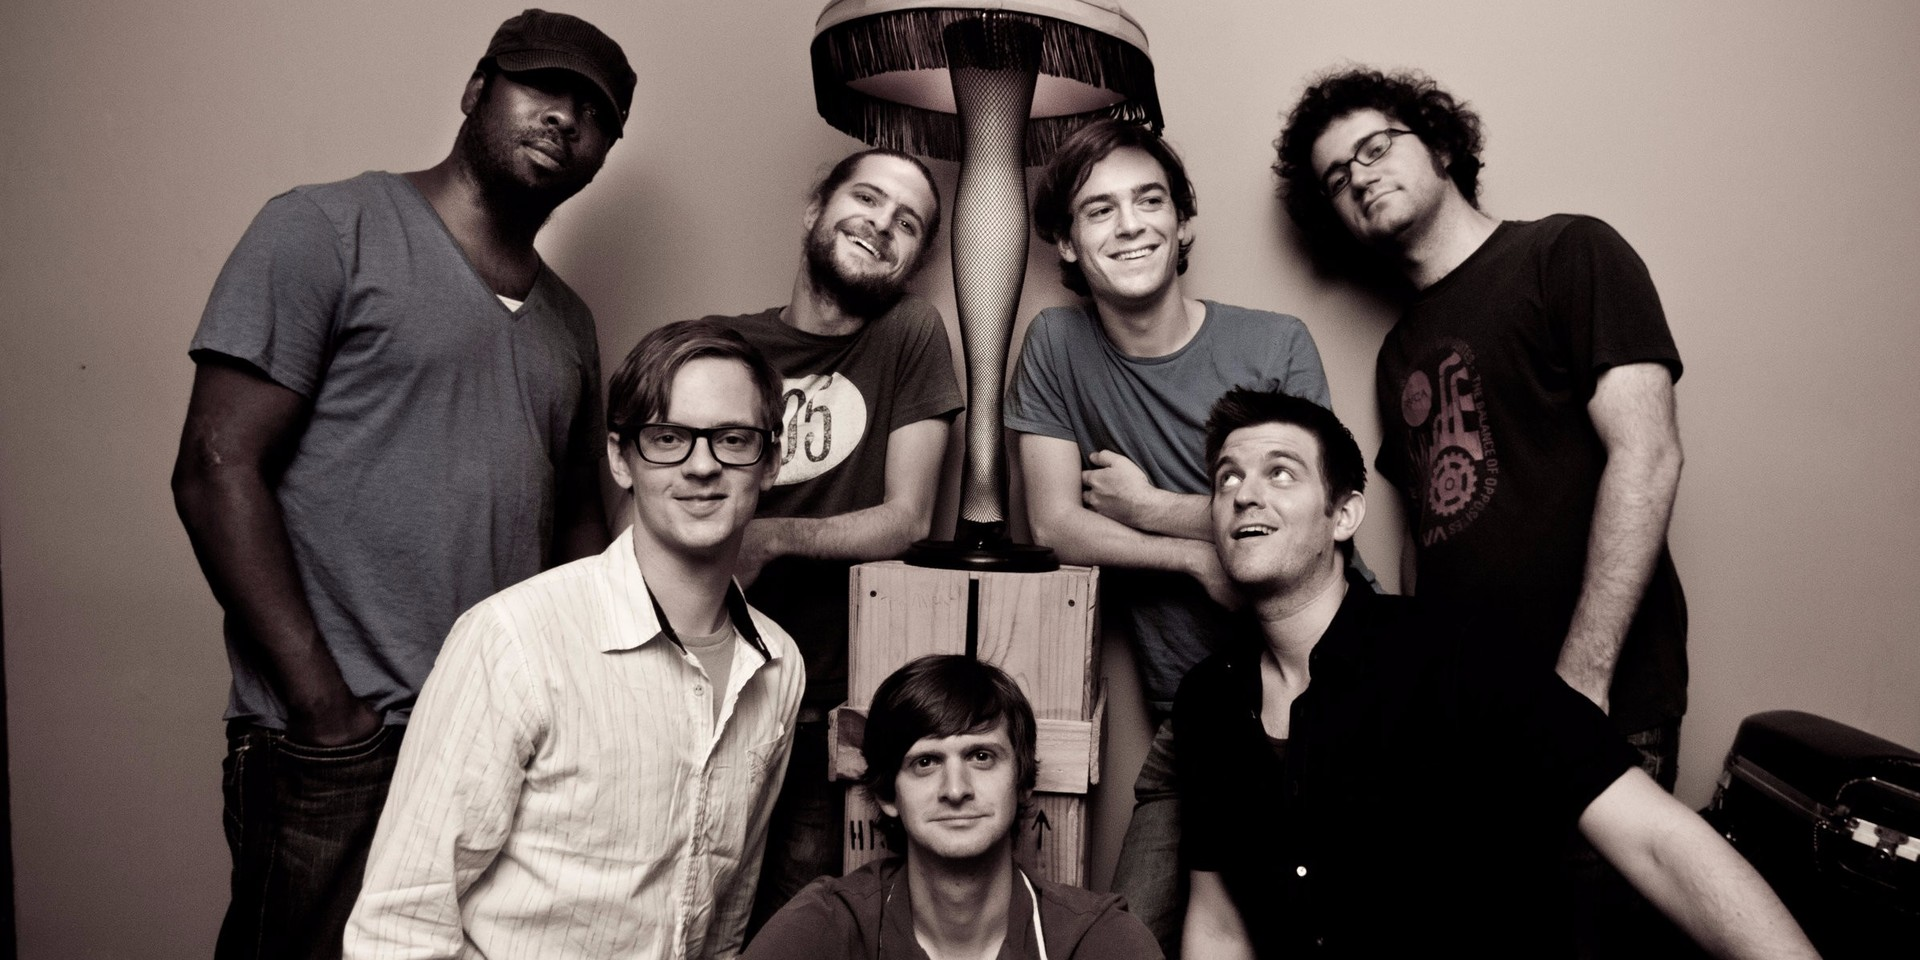 The Snarky Puppy live experience, as described by Singaporean musicians